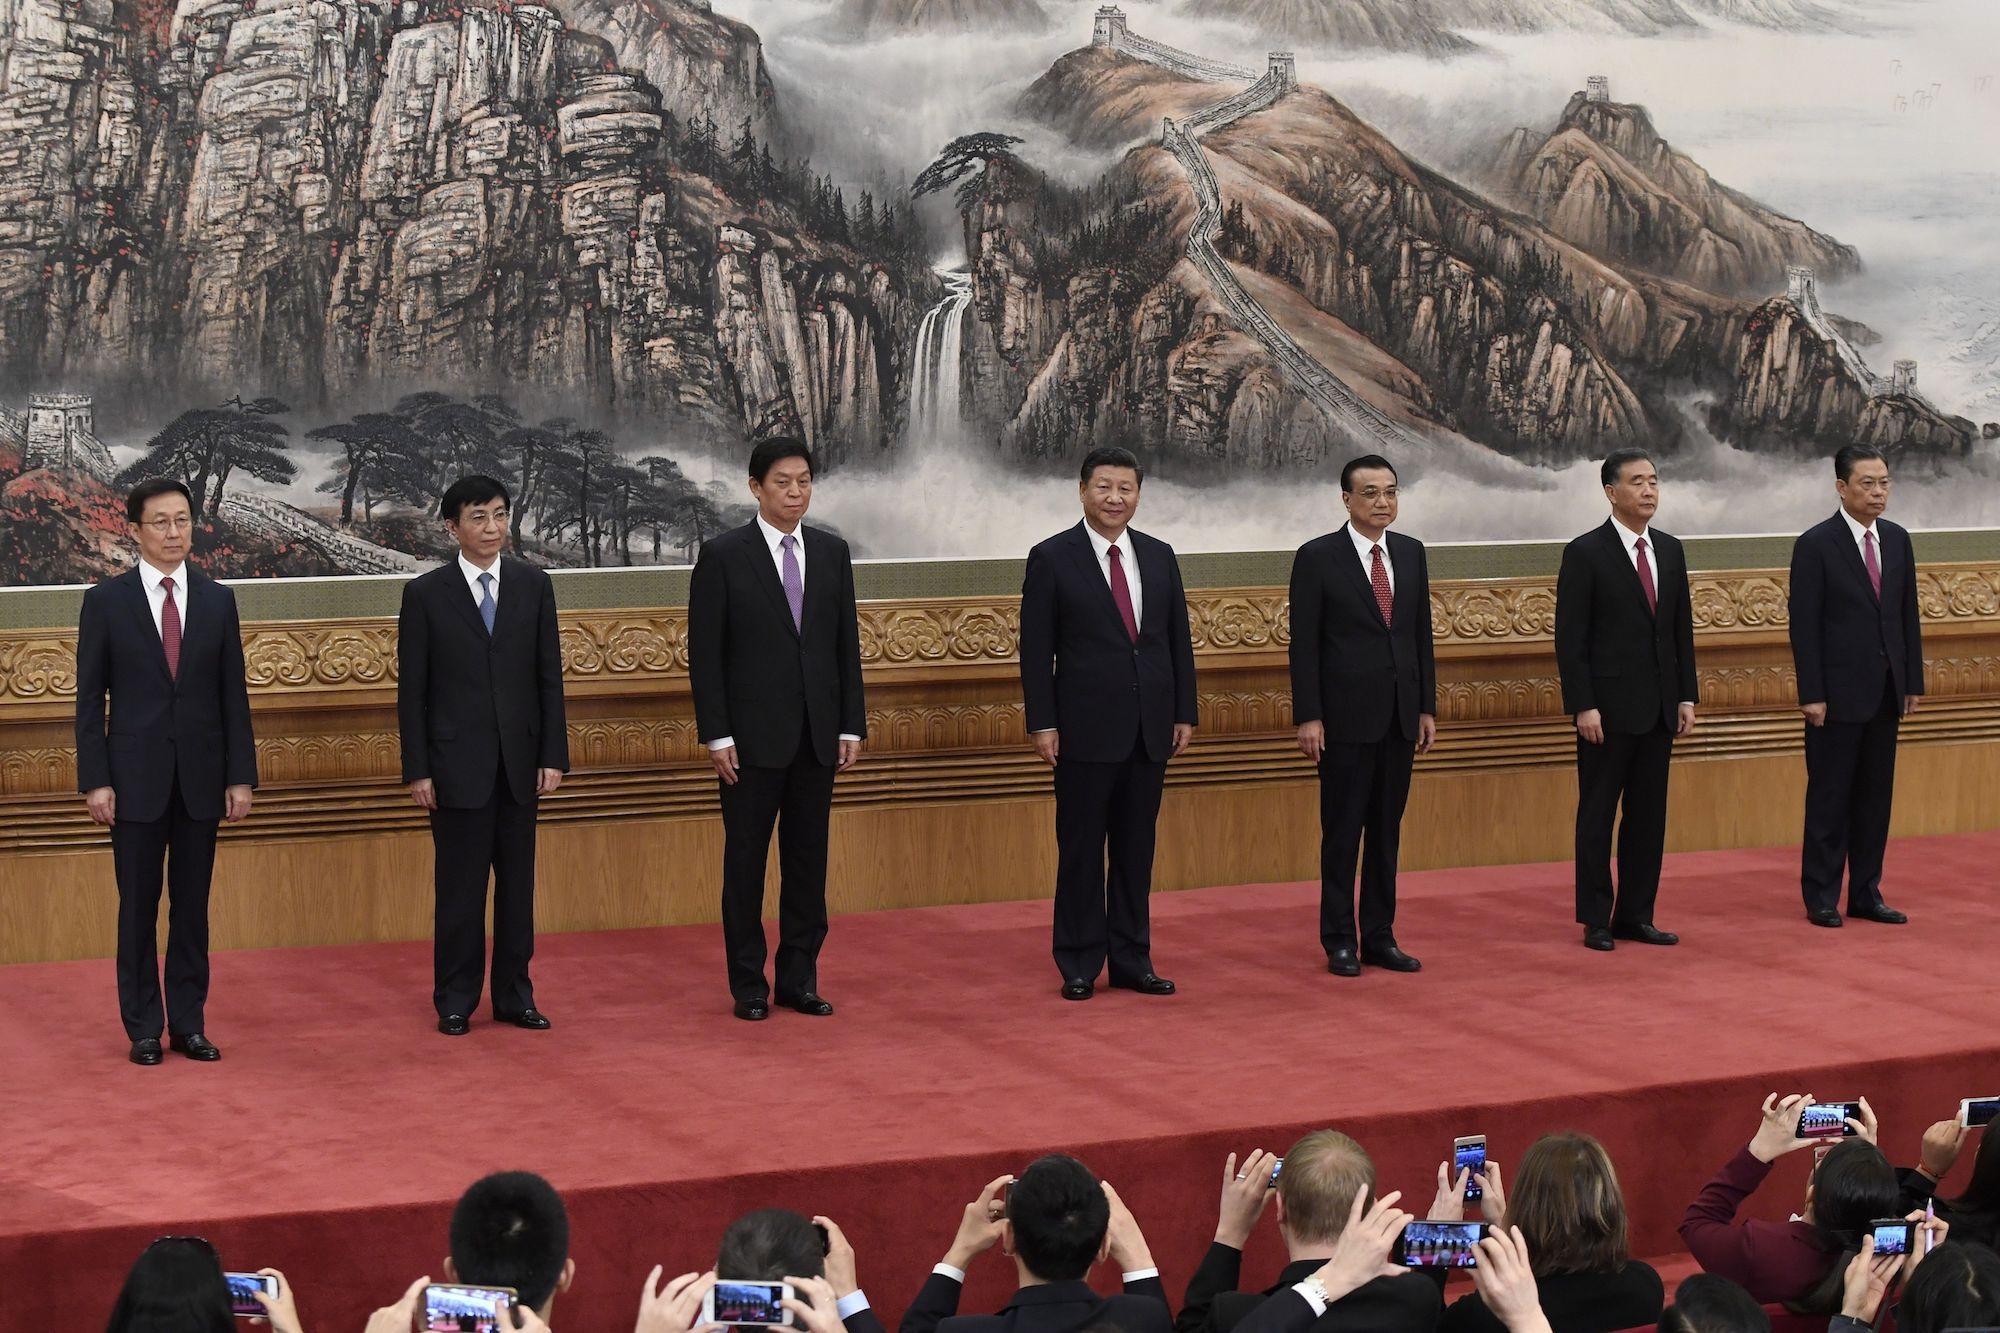 The Communist Party of China's new Politburo Standing Committee, the nation's top decision-making body (L-R) Han Zheng, Wang Huning, Li Zhanshu, Chinese President Xi Jinping, Premier Li Keqiang, Wang Yang, Zhao Leji meet the press at the Great Hall of the People in Beijing on October 25, 2017. China on October 25 unveiled its new ruling council with President Xi Jinping firmly at the helm after stamping his authority on the country by engraving his name on the Communist Party's constitution. / AFP PHOTO / WANG ZHAO        (Photo credit should read WANG ZHAO/AFP/Getty Images)